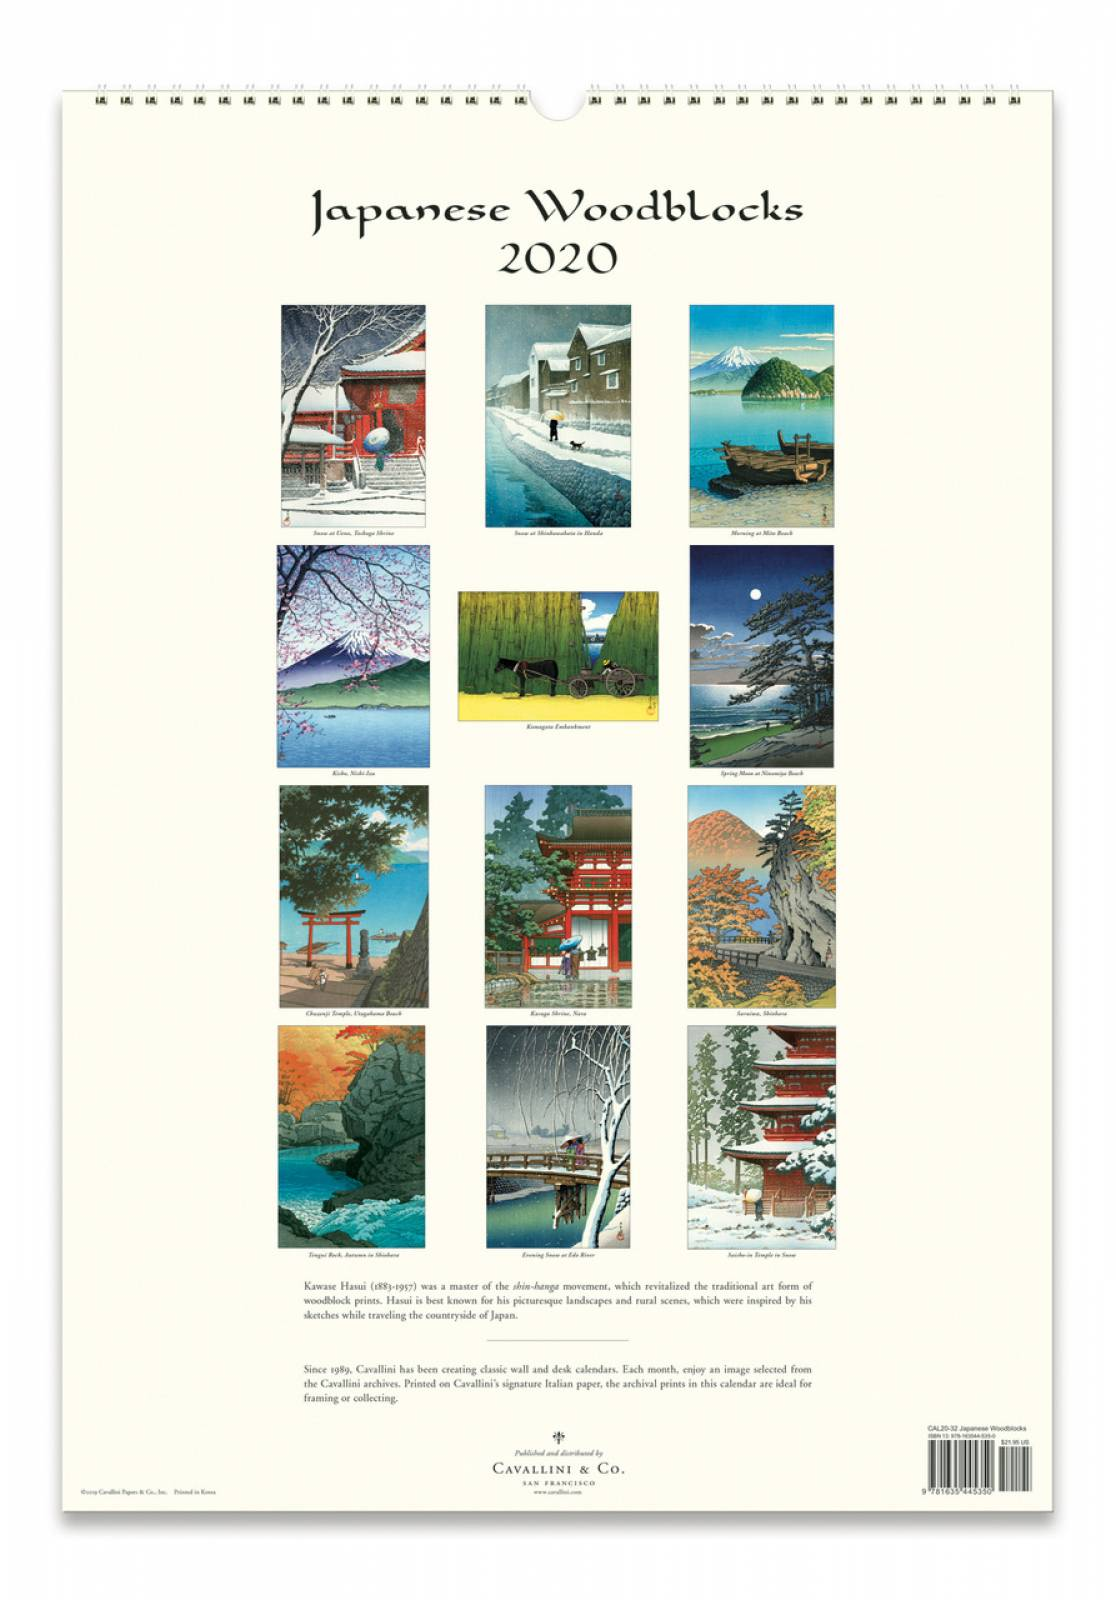 Japanese Woodblocks Wall Calendar by Cavallini thumbnails